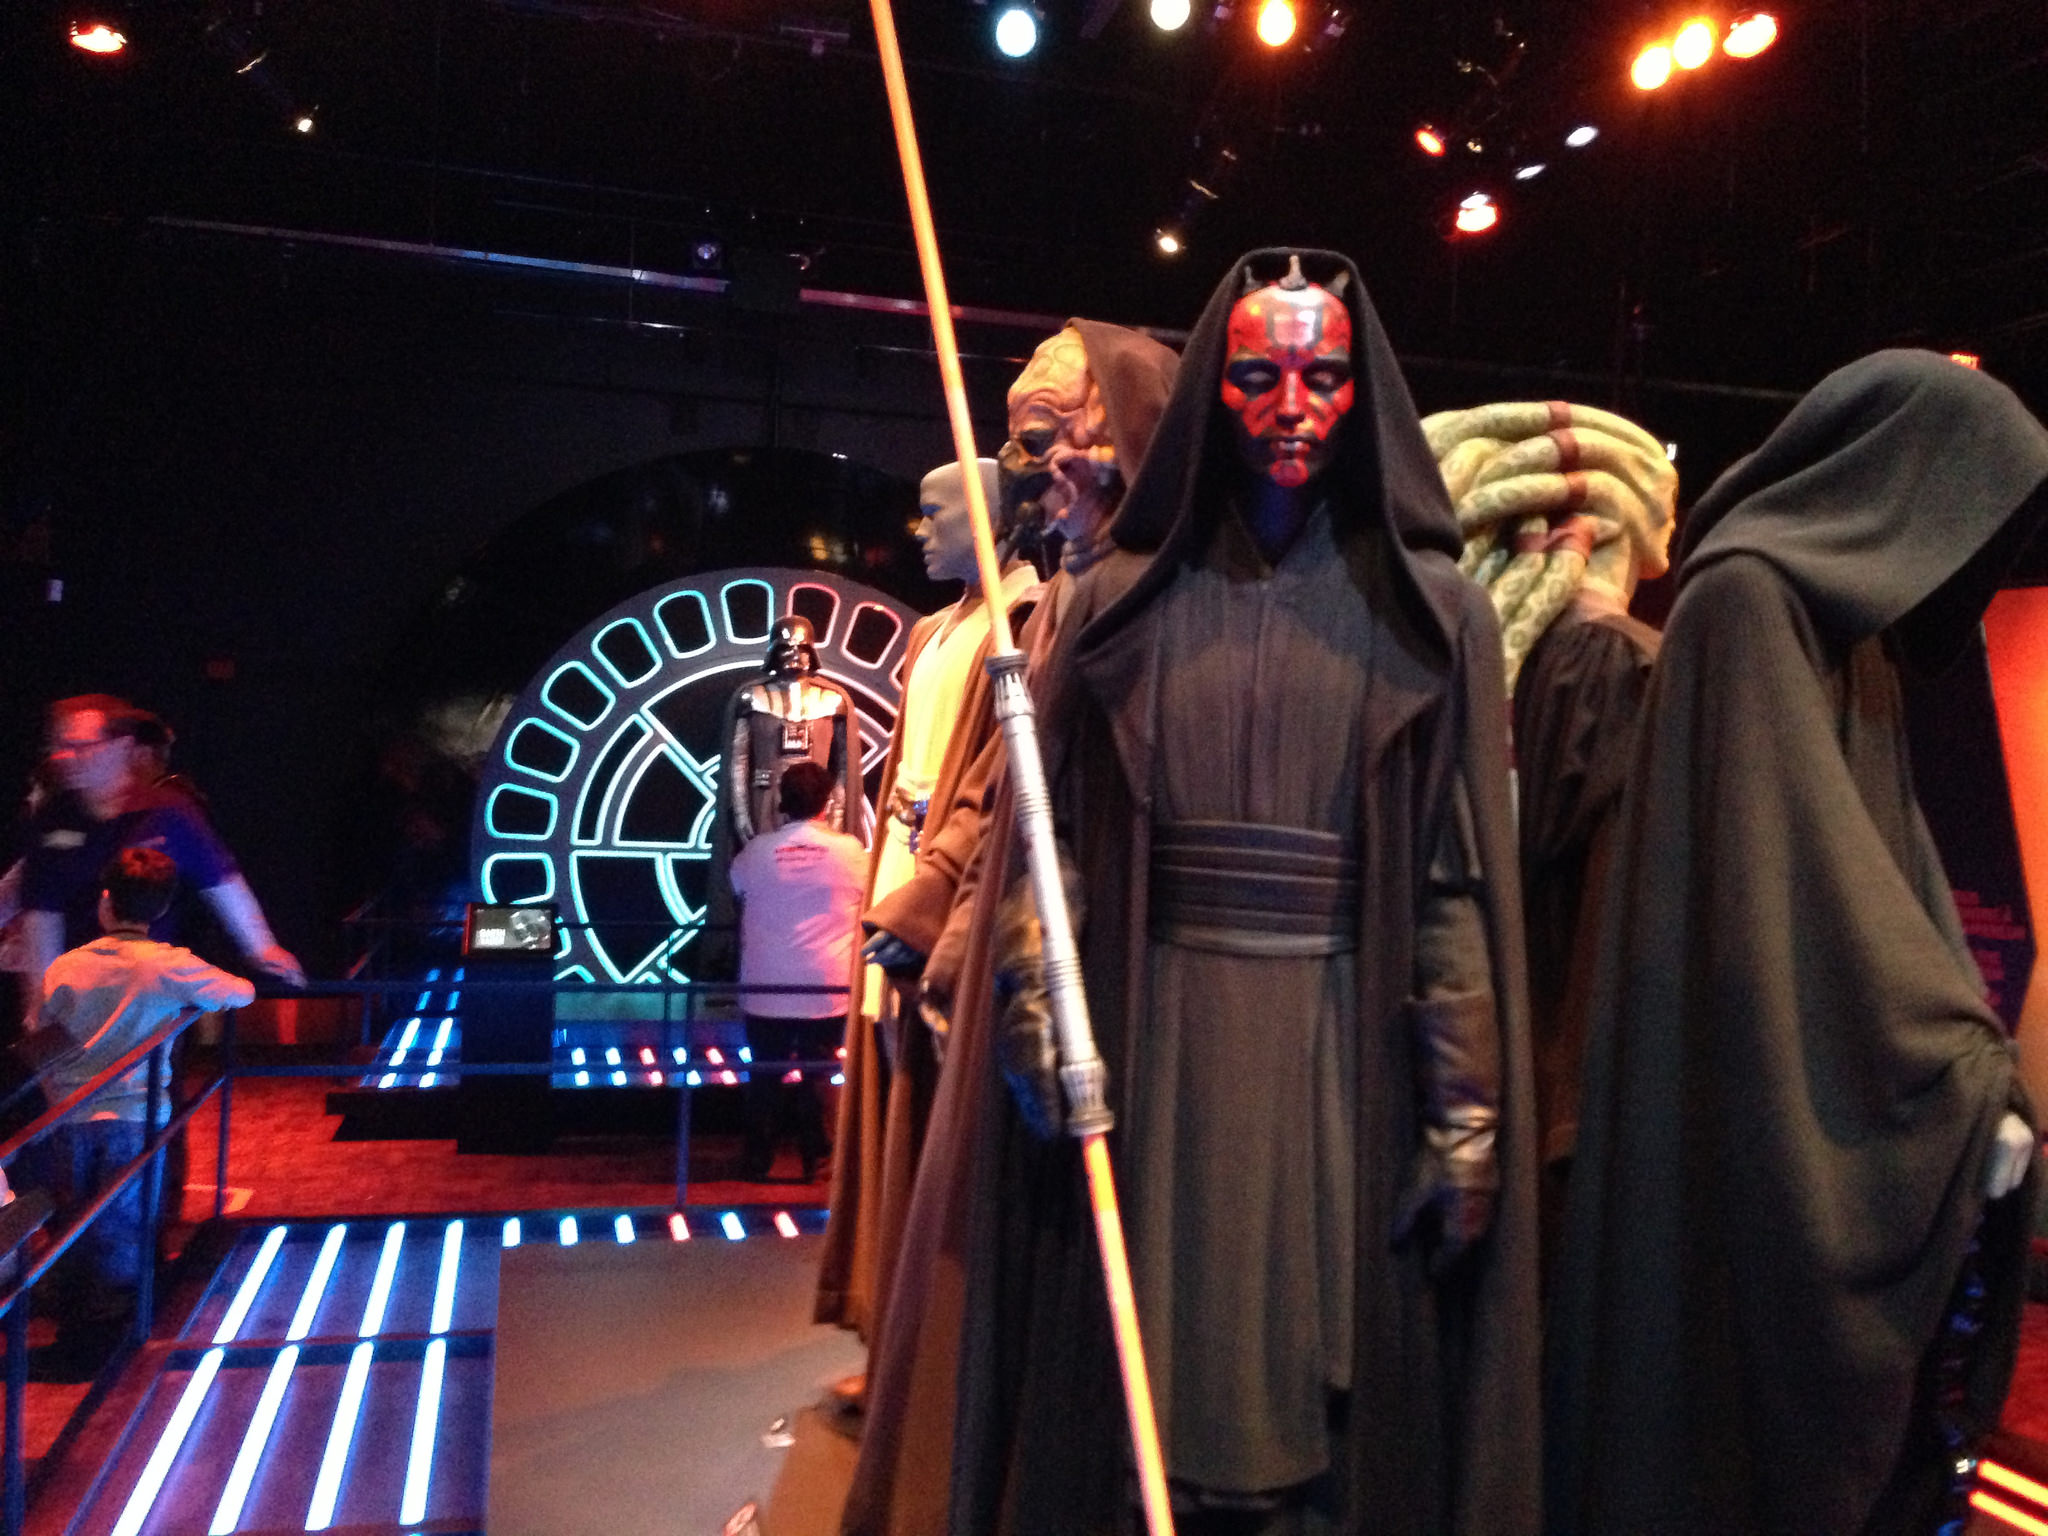 Dark Side at Star Wars Identities